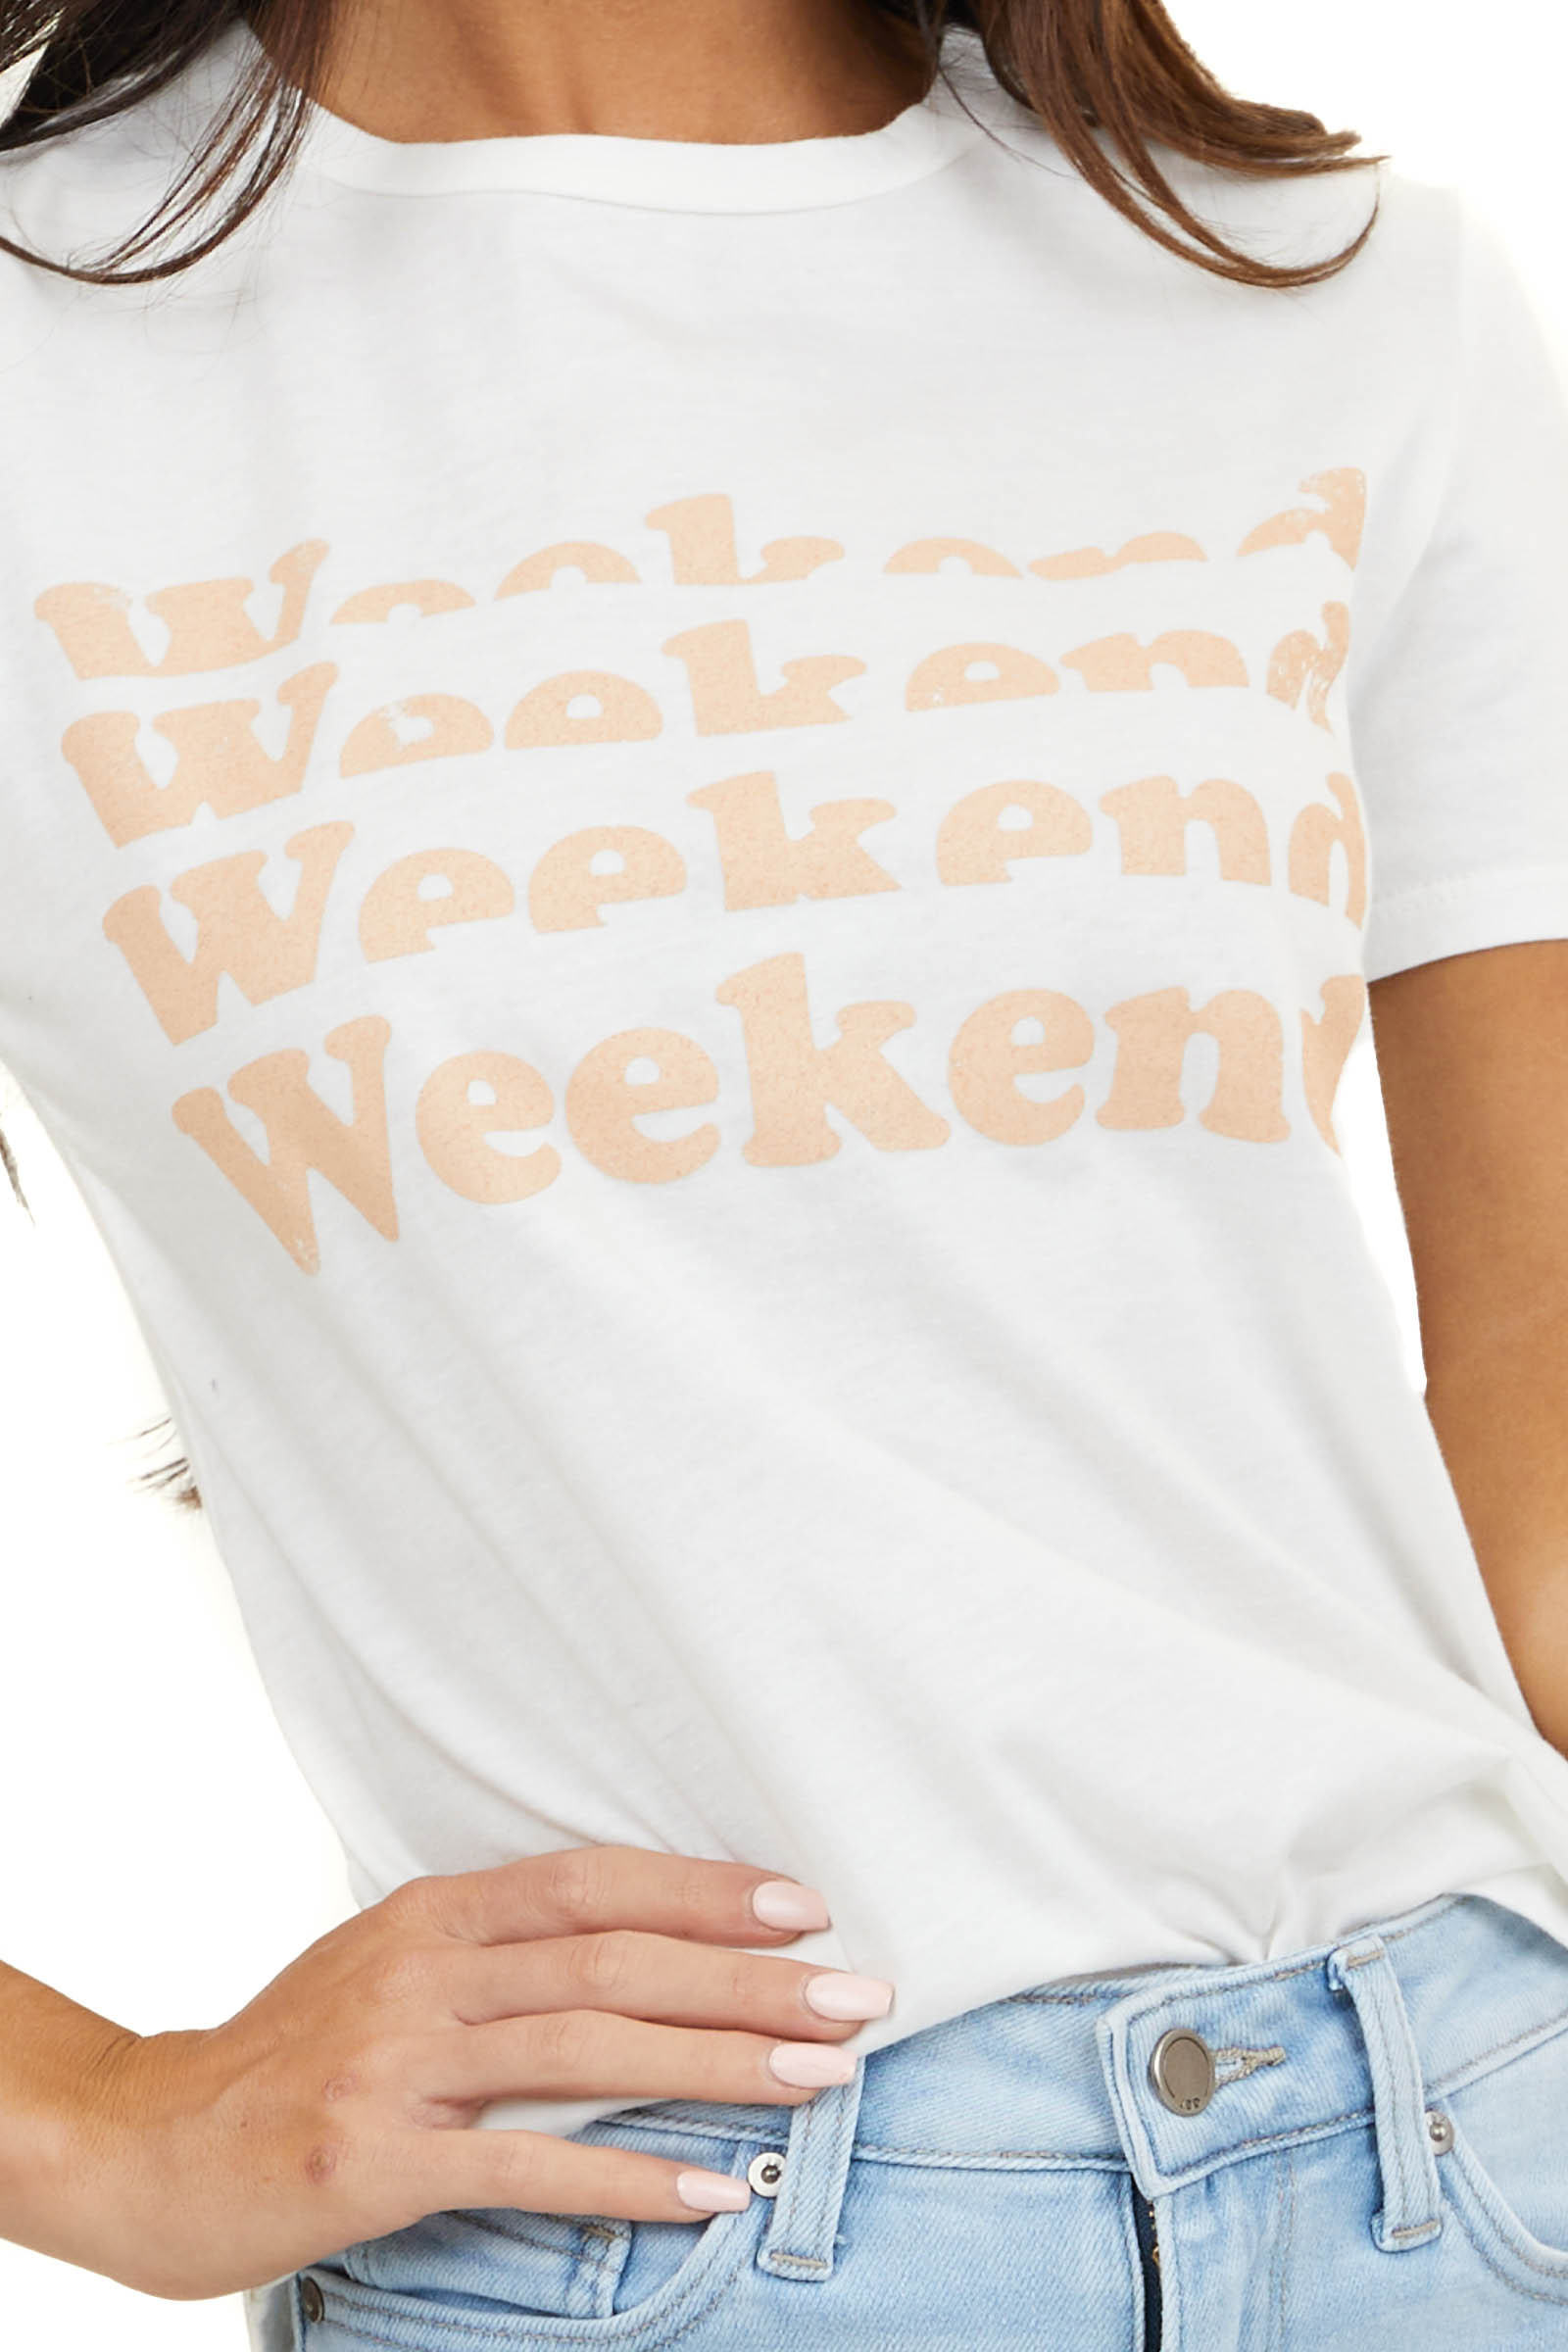 Off White 'Weekend' Graphic Tee With Short Sleeves